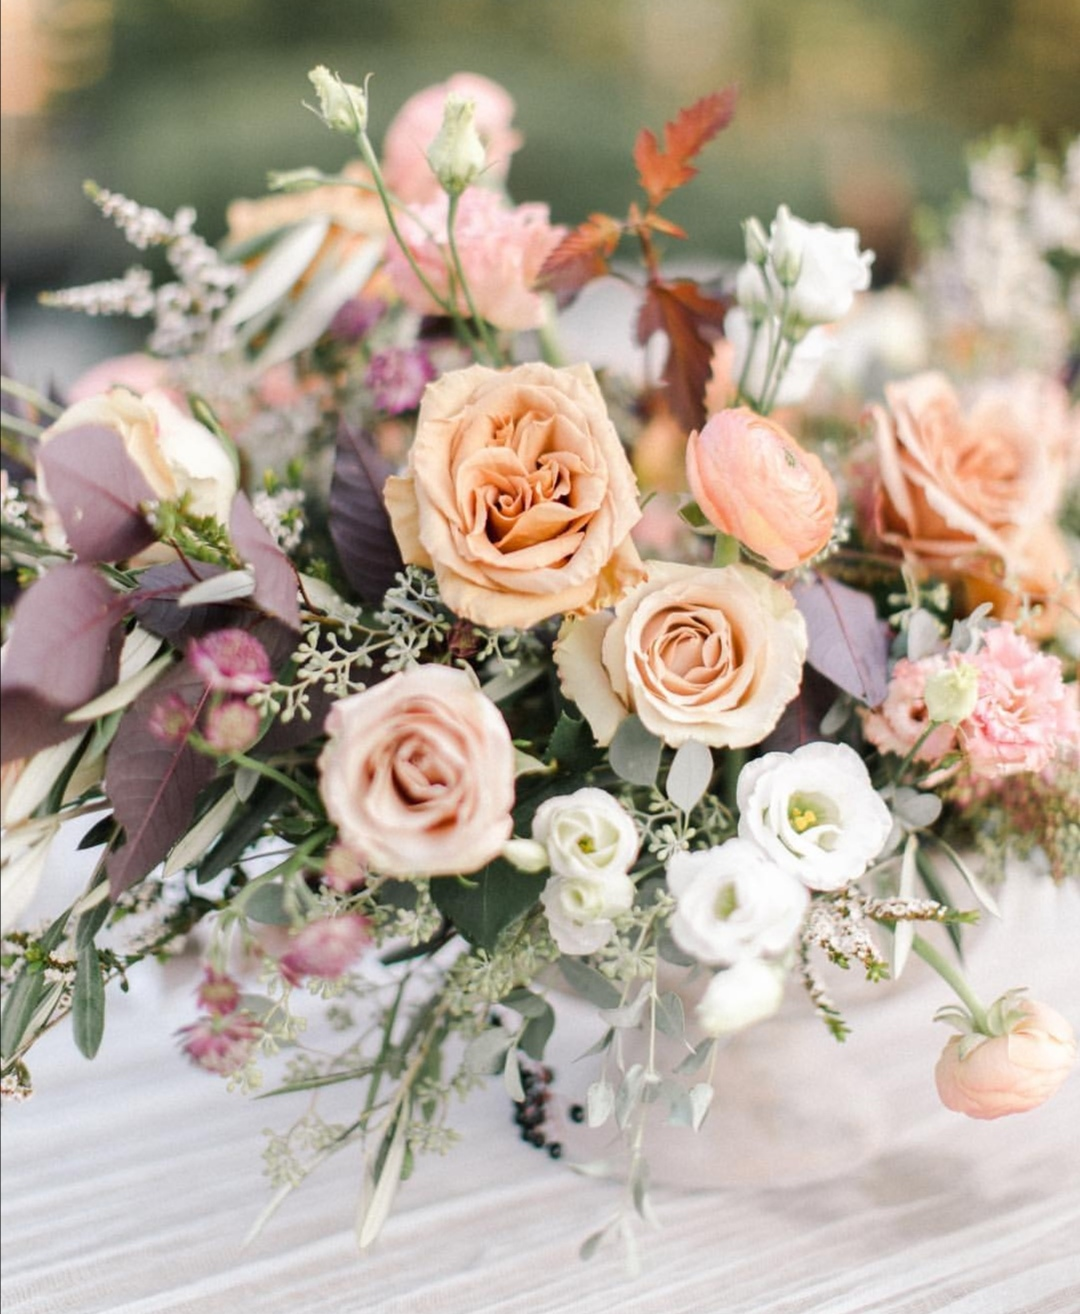 Peach brides bouquet